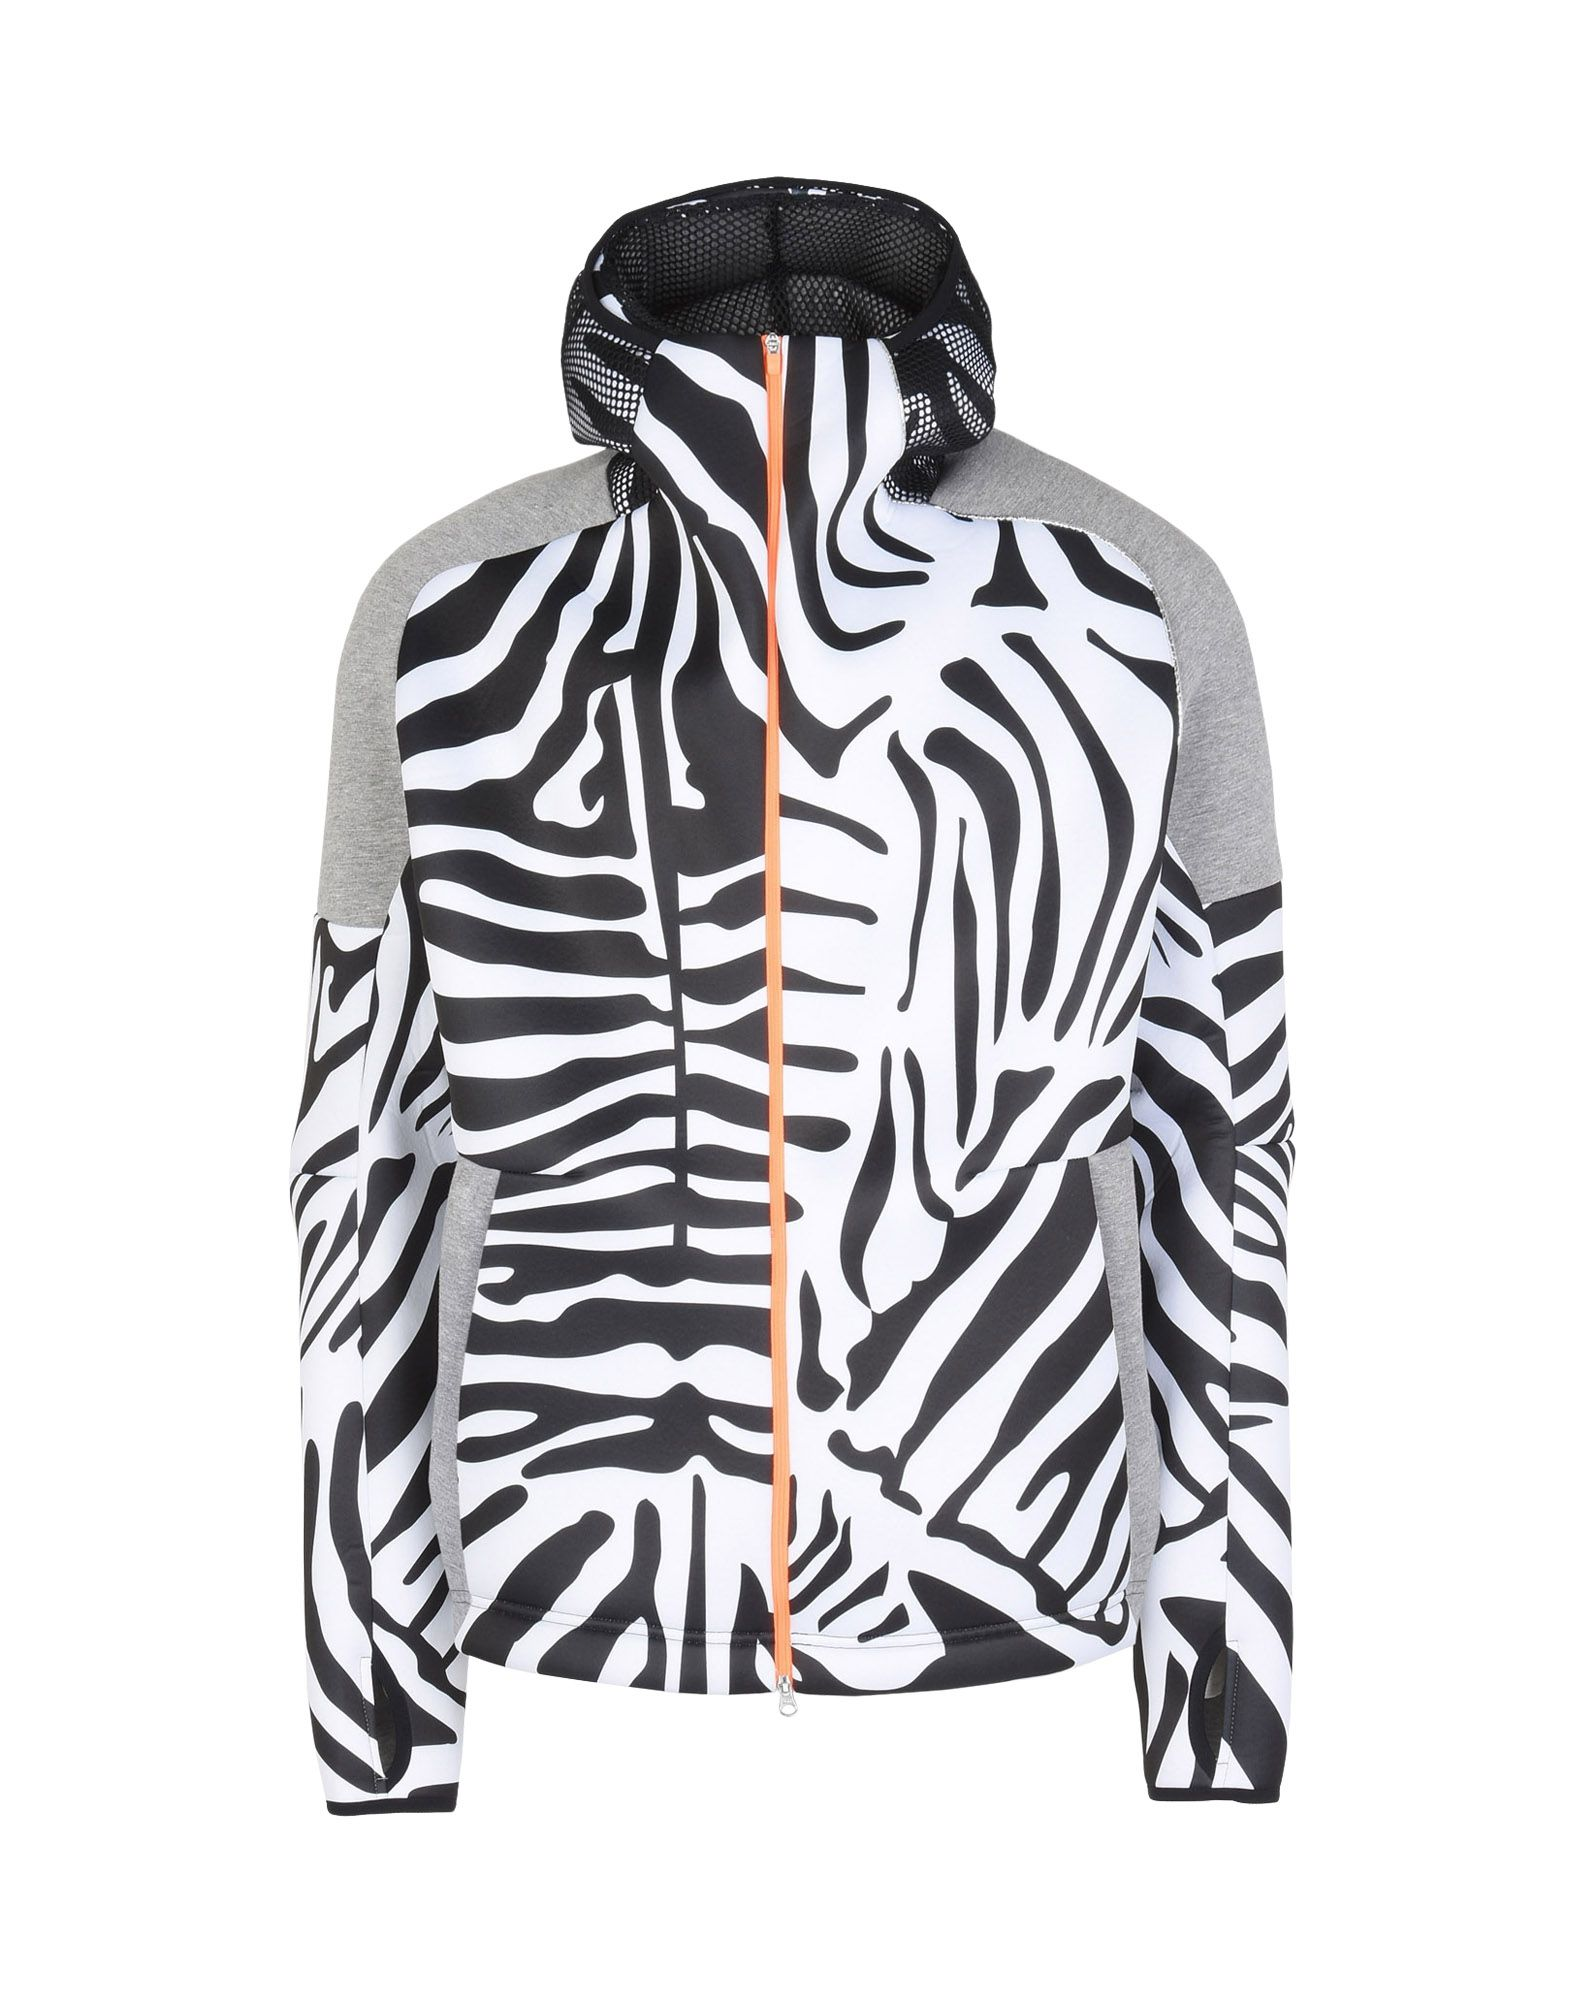 Kolor Z.N.E Hoody Jackets | Adidas Y 3 Official Site